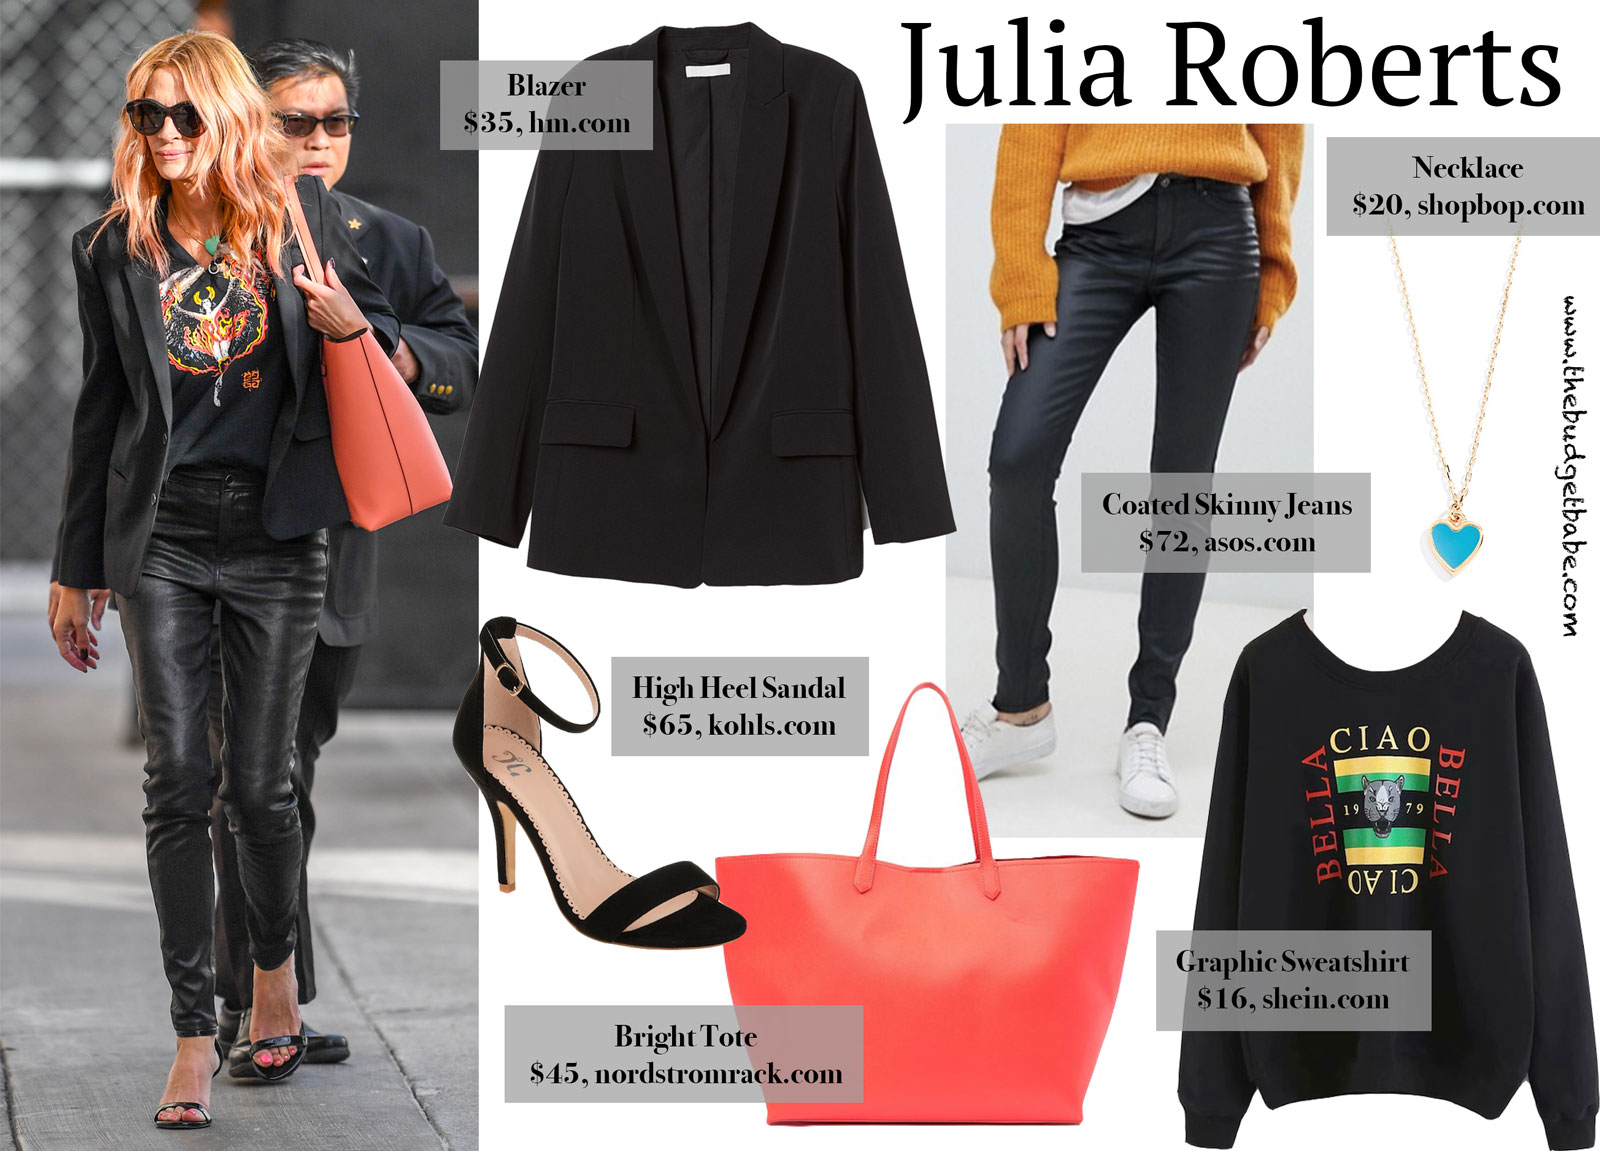 Julia Roberts Graphic Givenchy Sweatshirt Look for Less